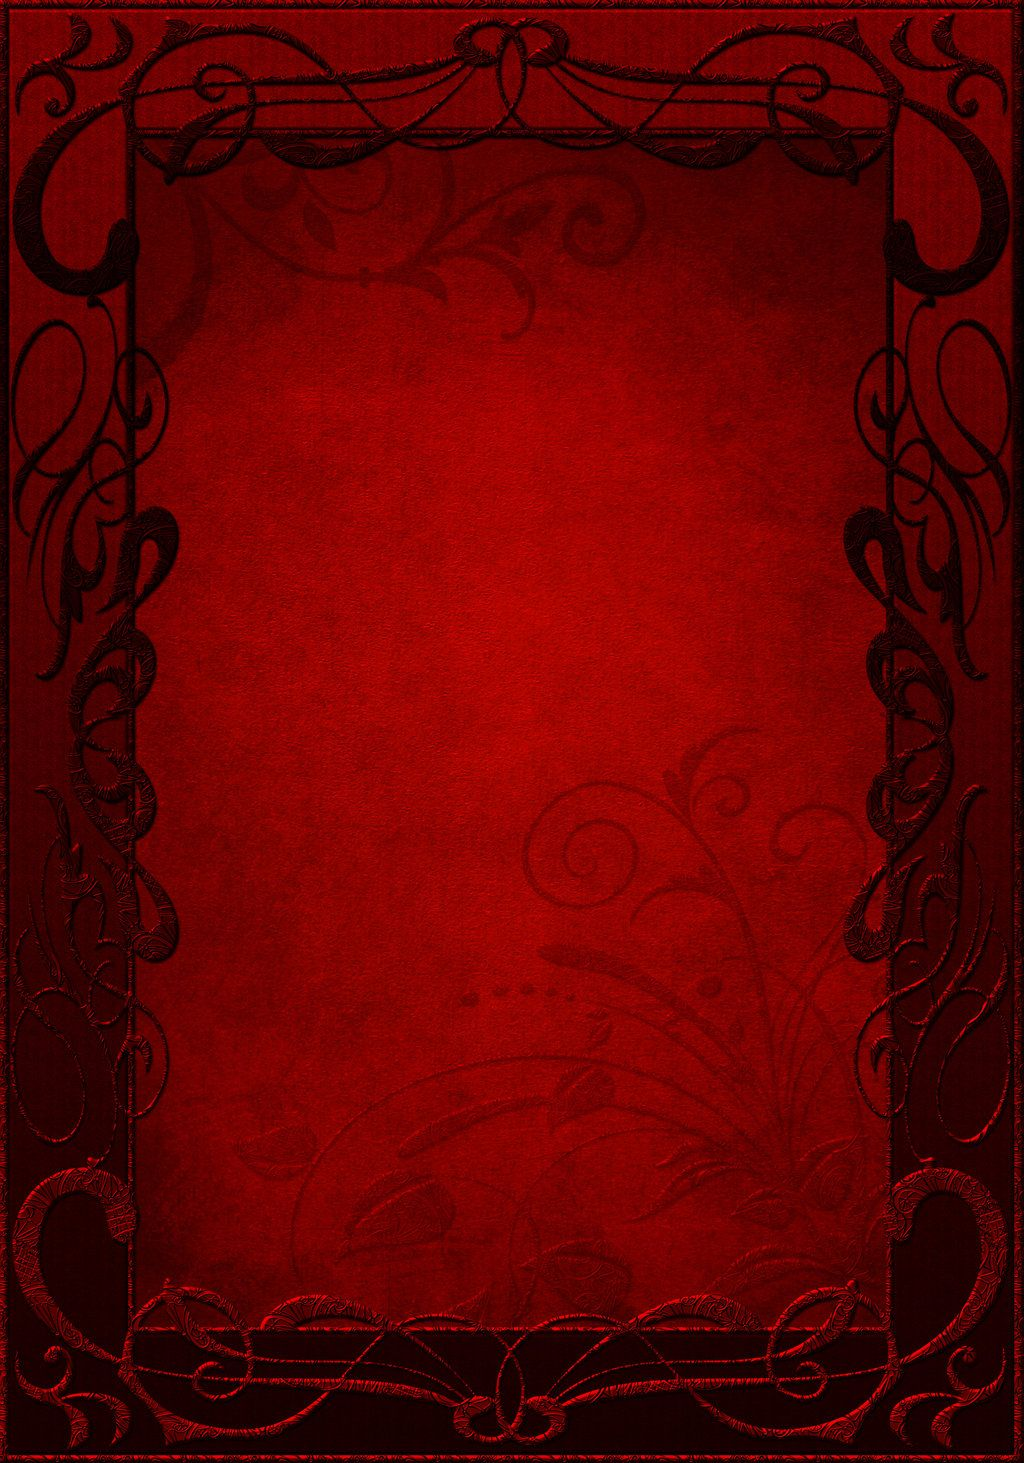 IMVU Red Texture | Graphic Backgrounds | Pinterest